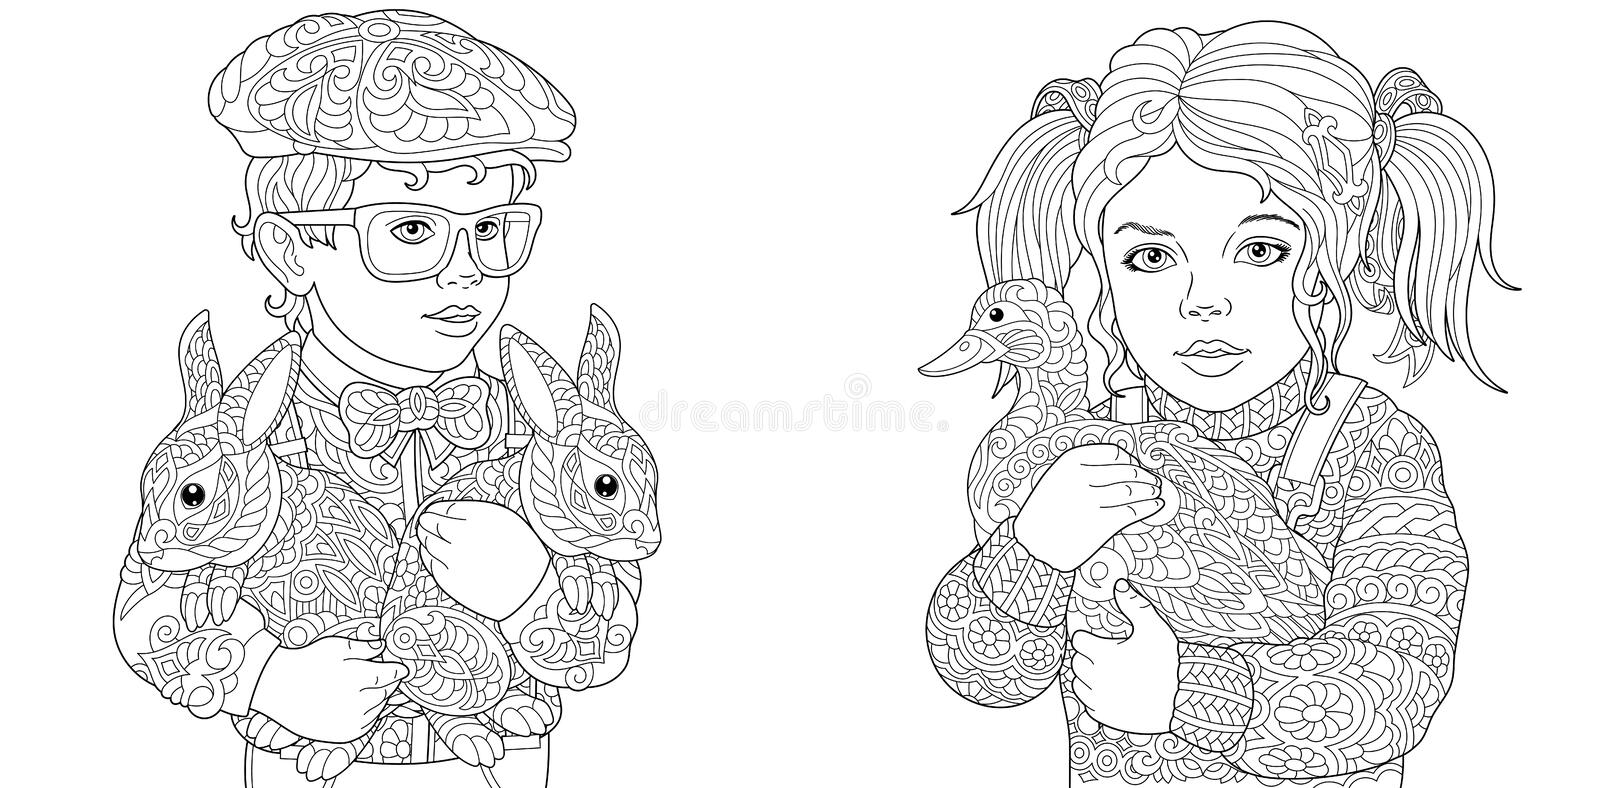 - Boy And Girl. Coloring Pages. Coloring Book For Adults. Colouring Pictures  With Kids And Farm Animals Drawn In Zentangle Style. Stock Vector -  Illustration Of Beautiful, Embrace: 131671781